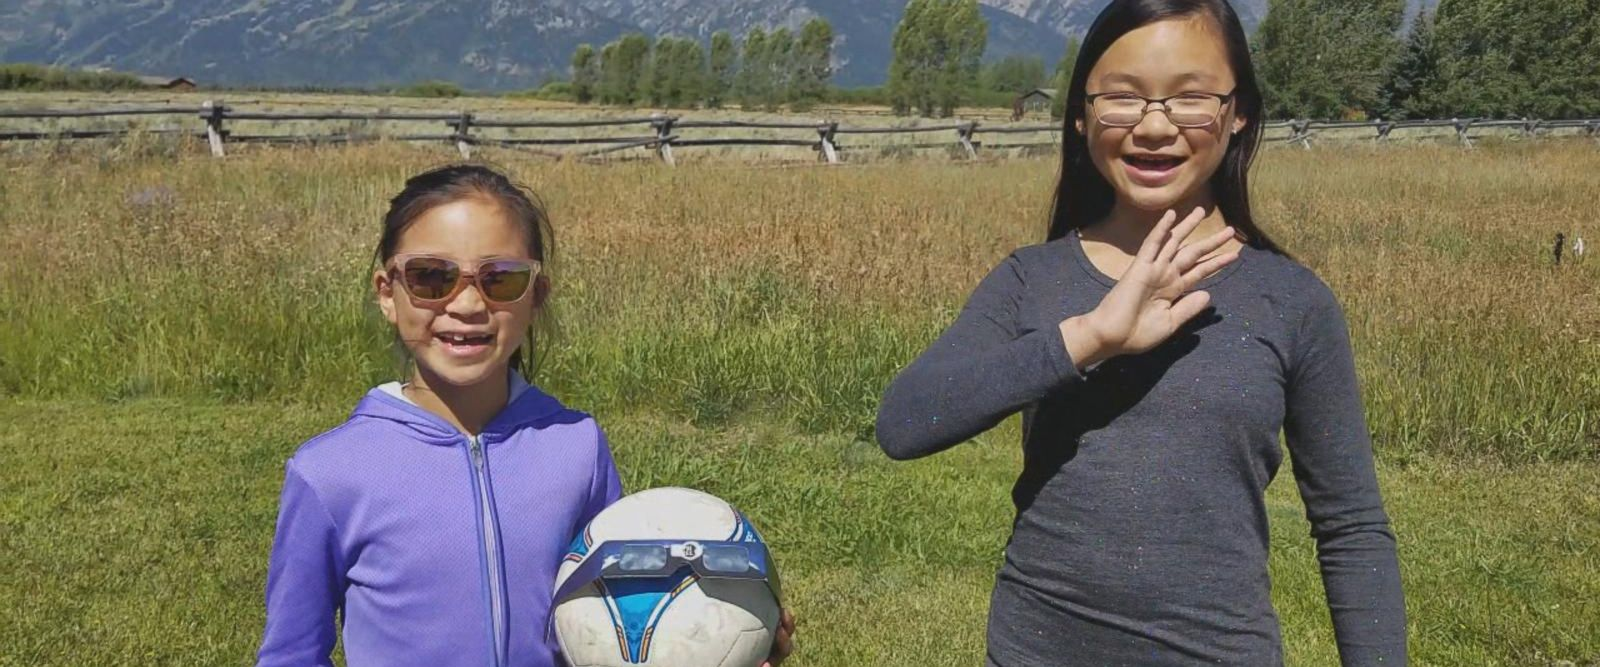 VIDEO: Science-loving sisters explain the total solar eclipse in 1 minute